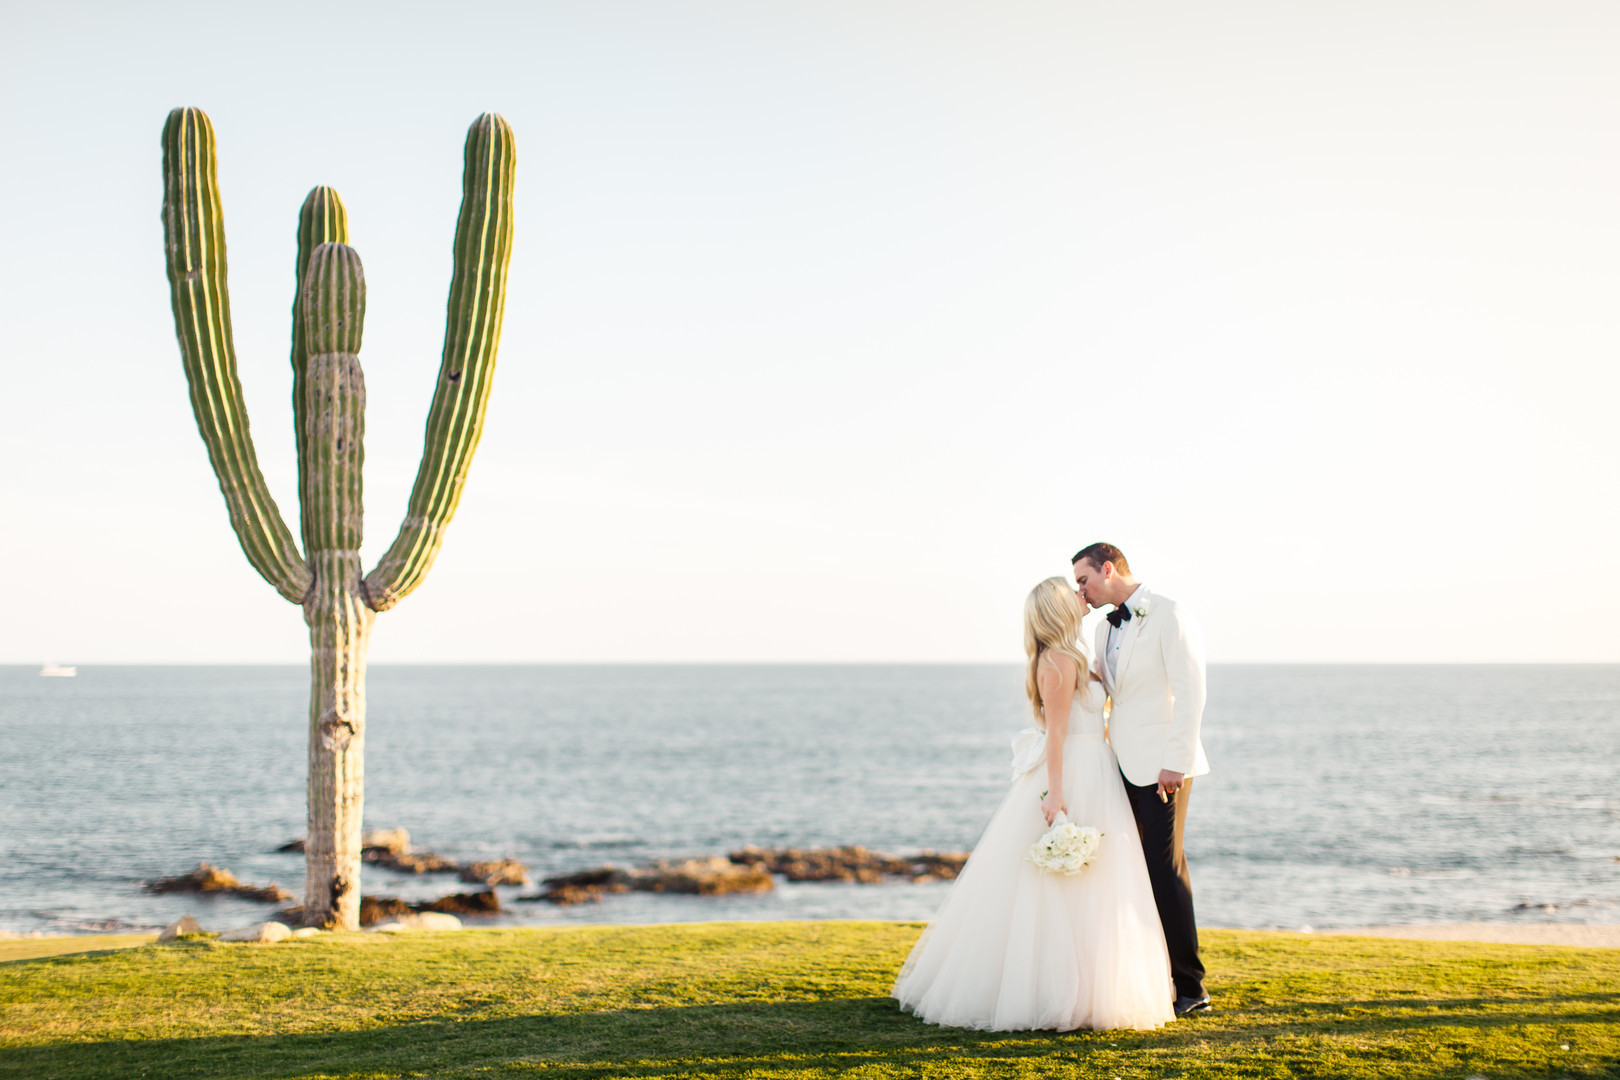 Light and Airy Destination Wedding at Cabo del Sol- Club House, Photography by Photo by Julieta for Destination Wedding Blog www.adrianaweddings.com